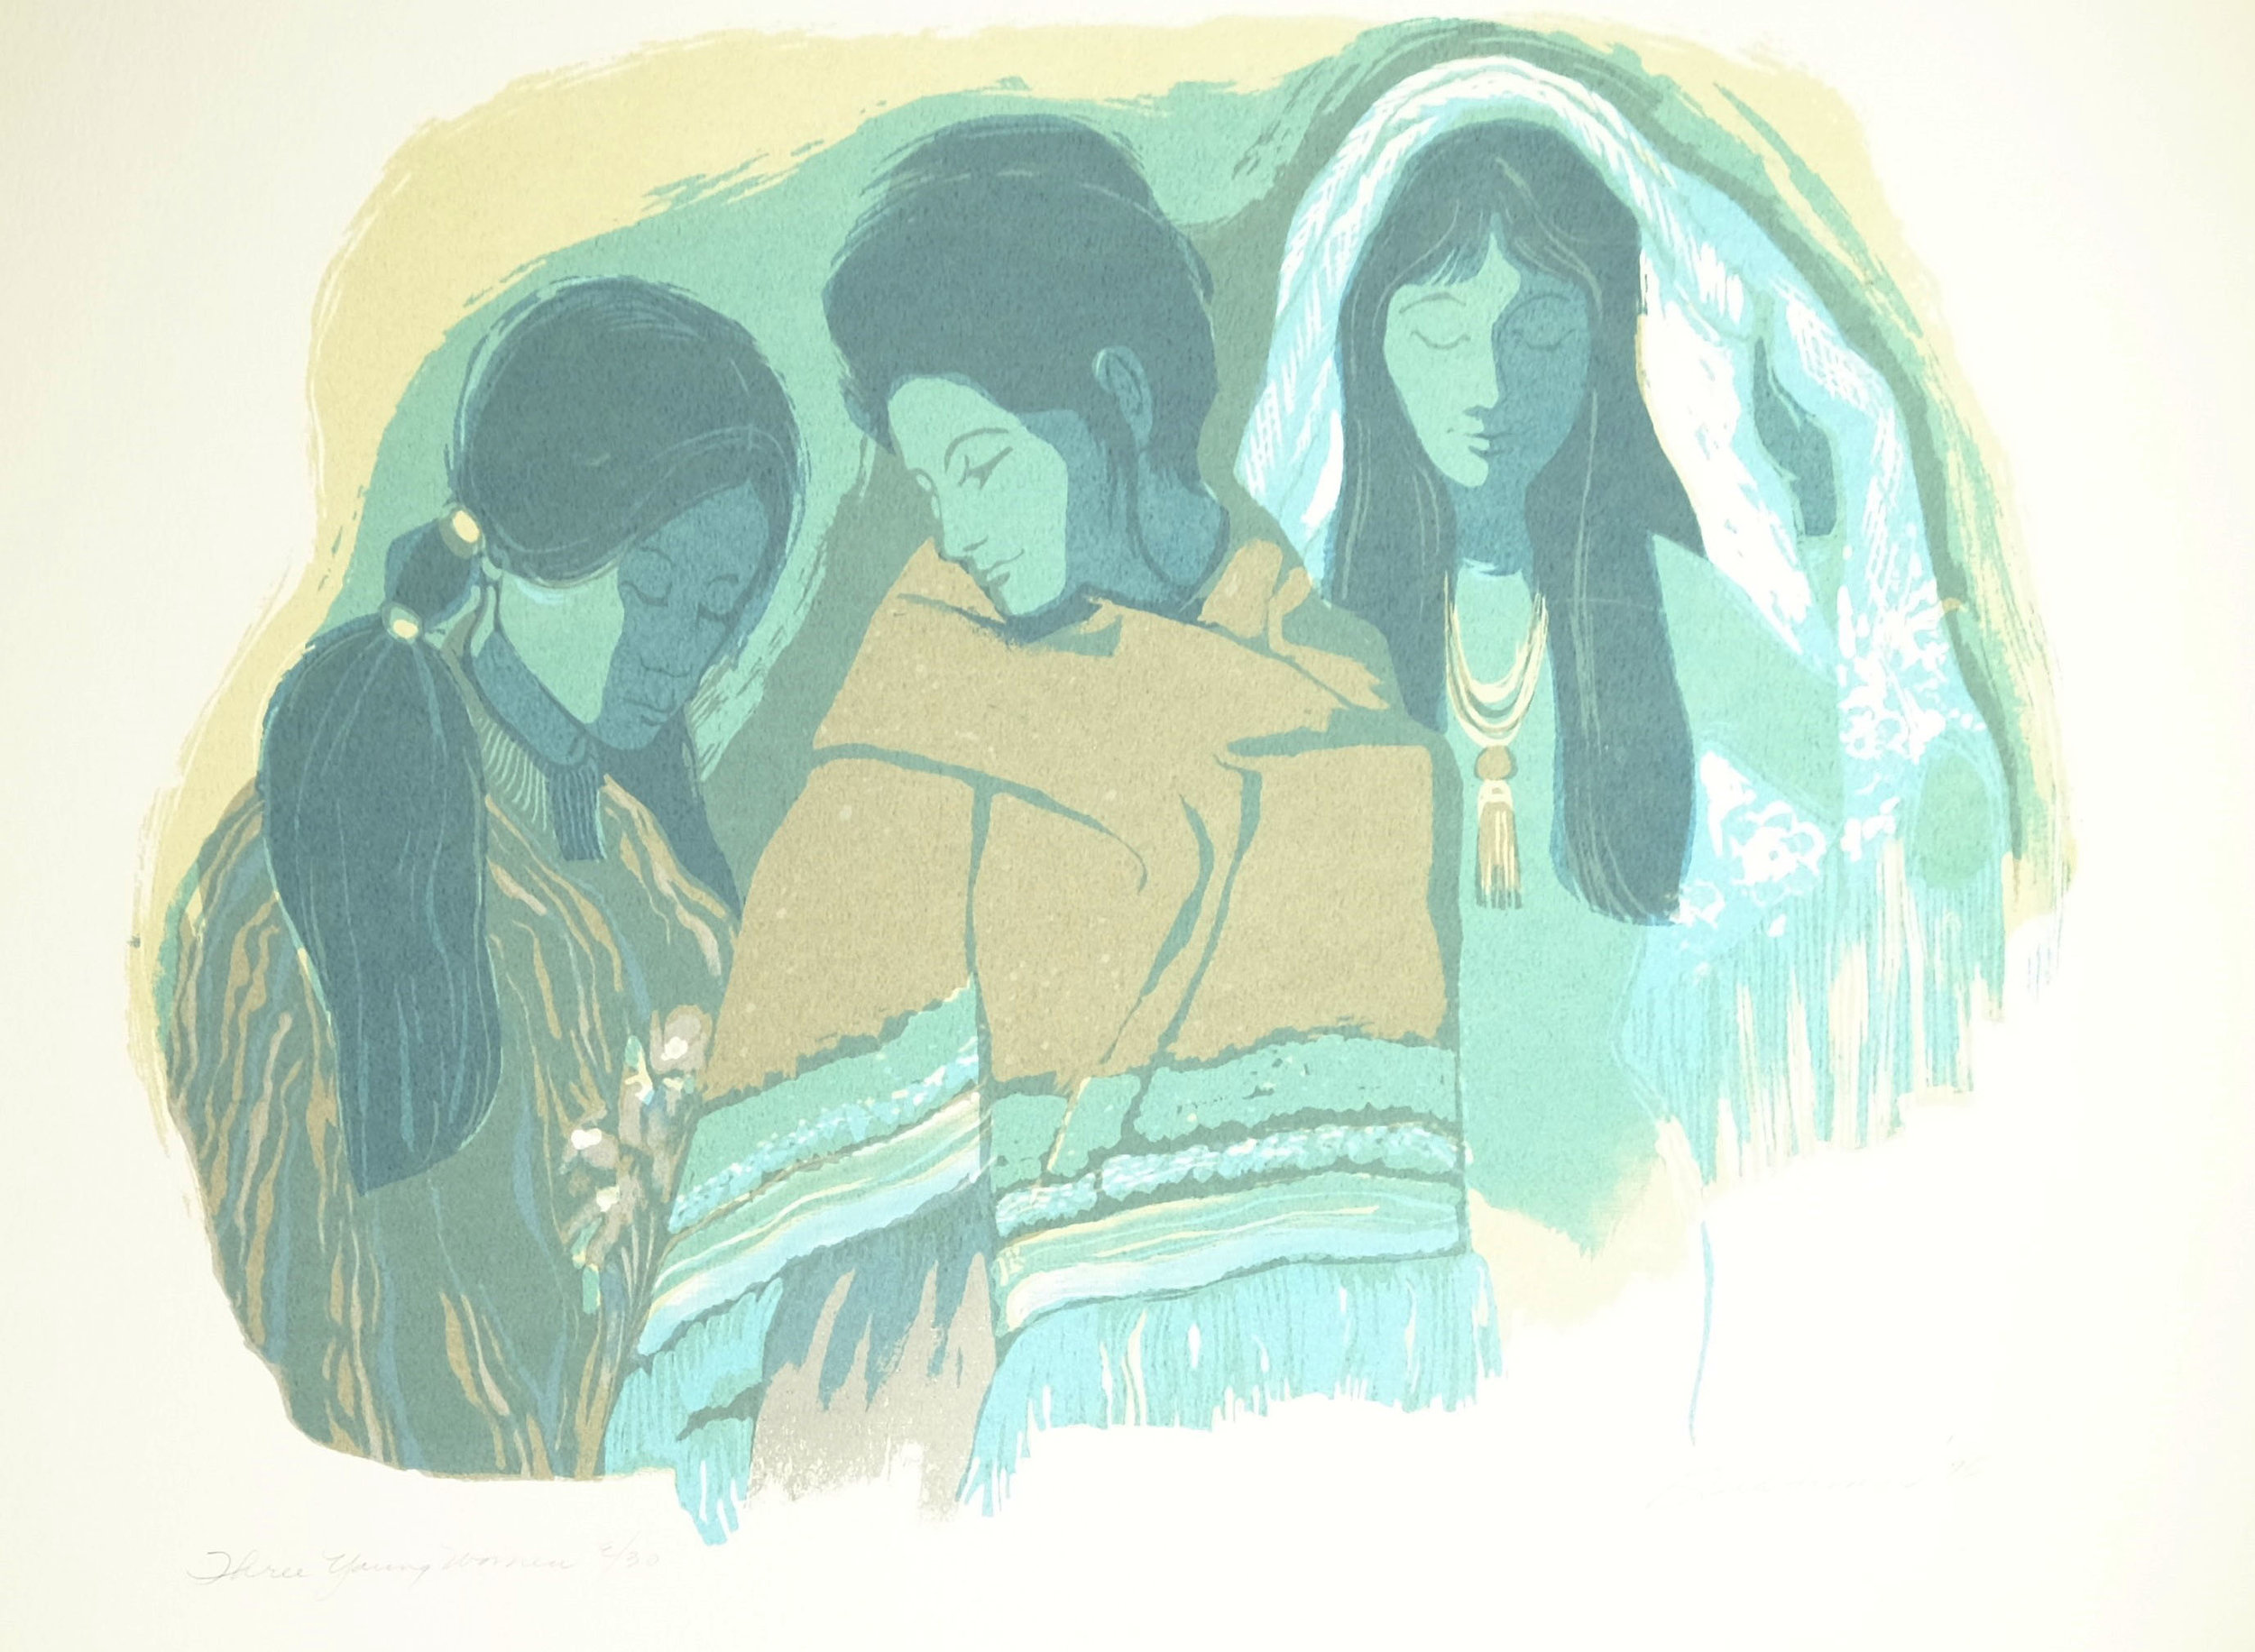 Three Young Women, Aqua, $175